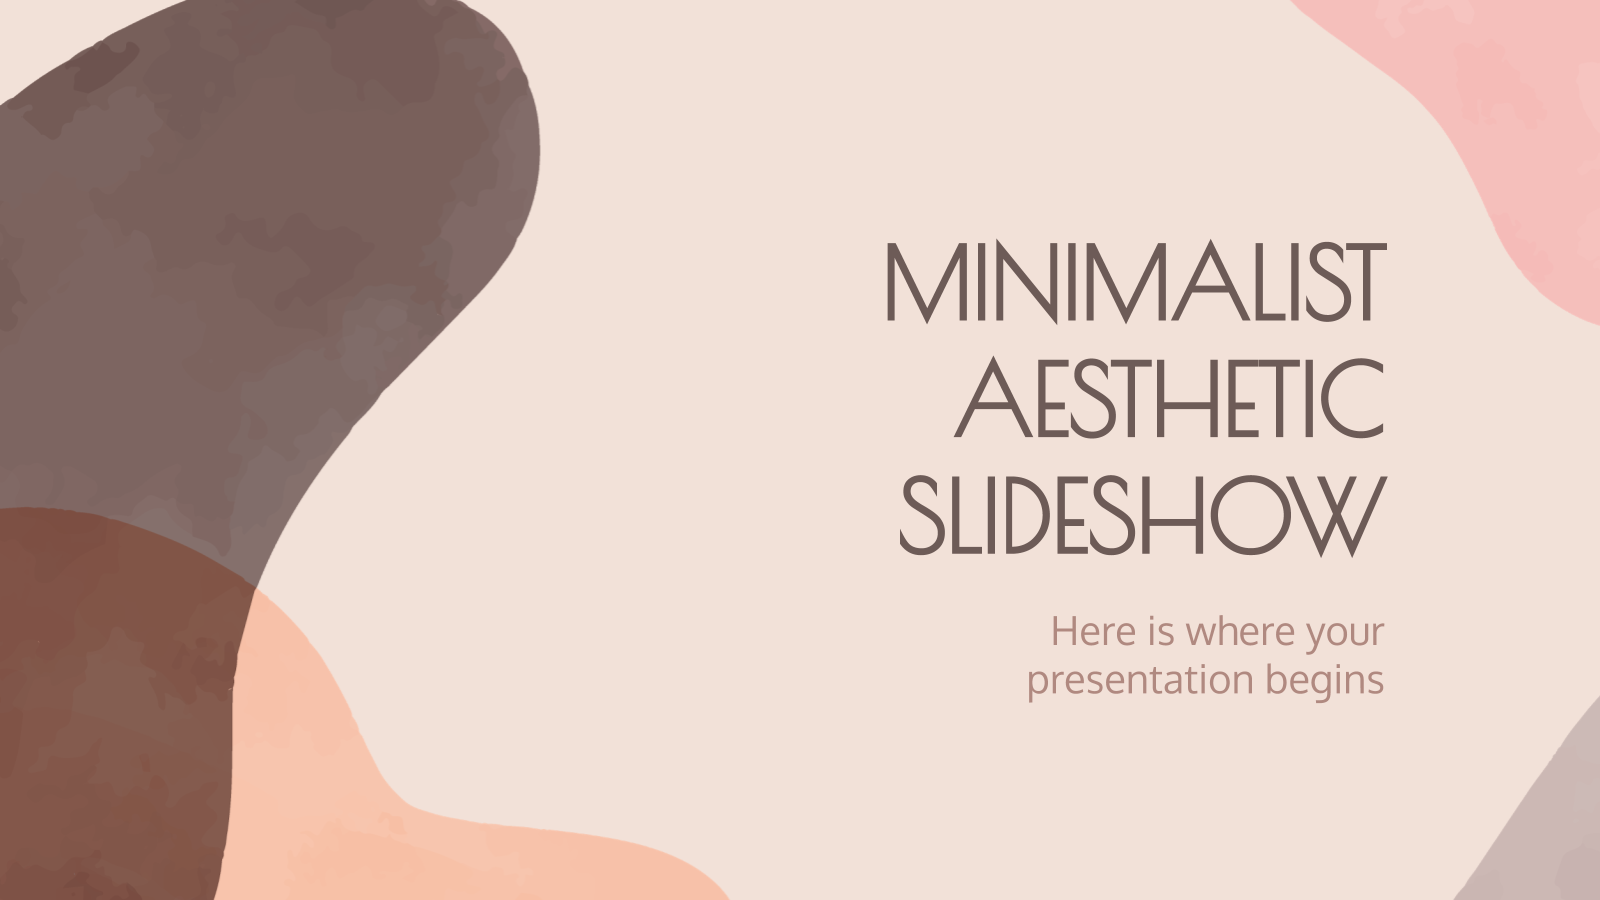 Minimalist Aesthetic Slideshow presentation template